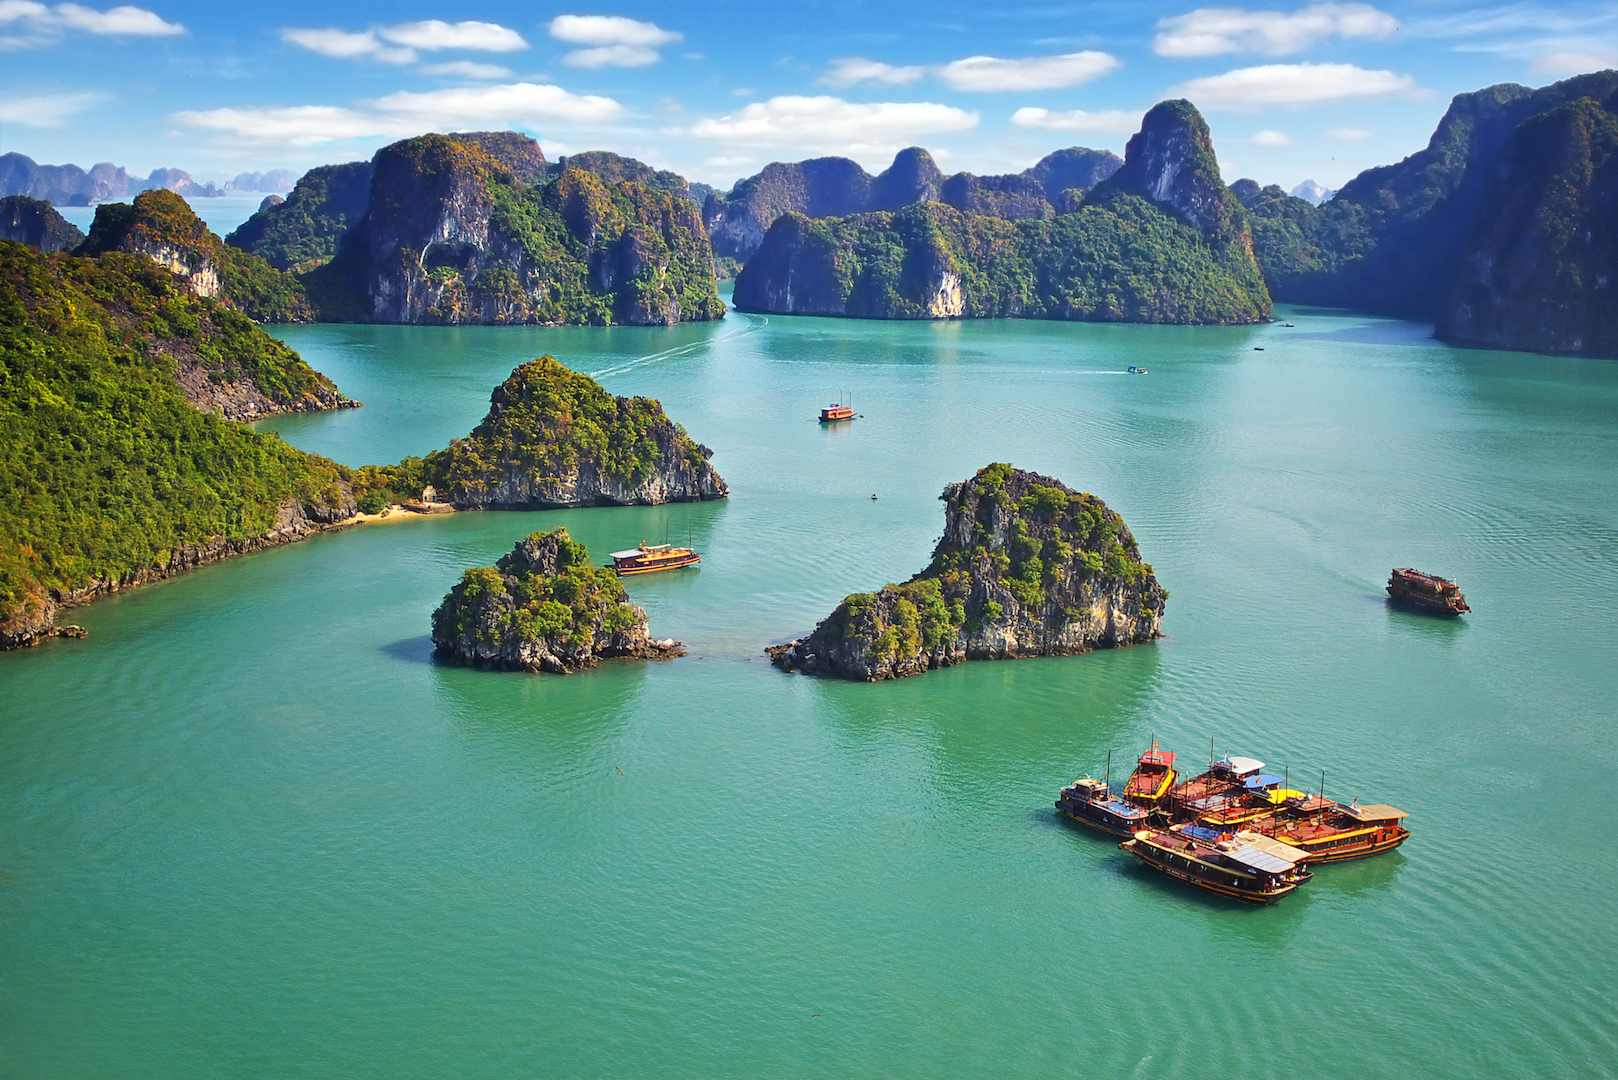 Halong views group trip for 18 to 32 year olds